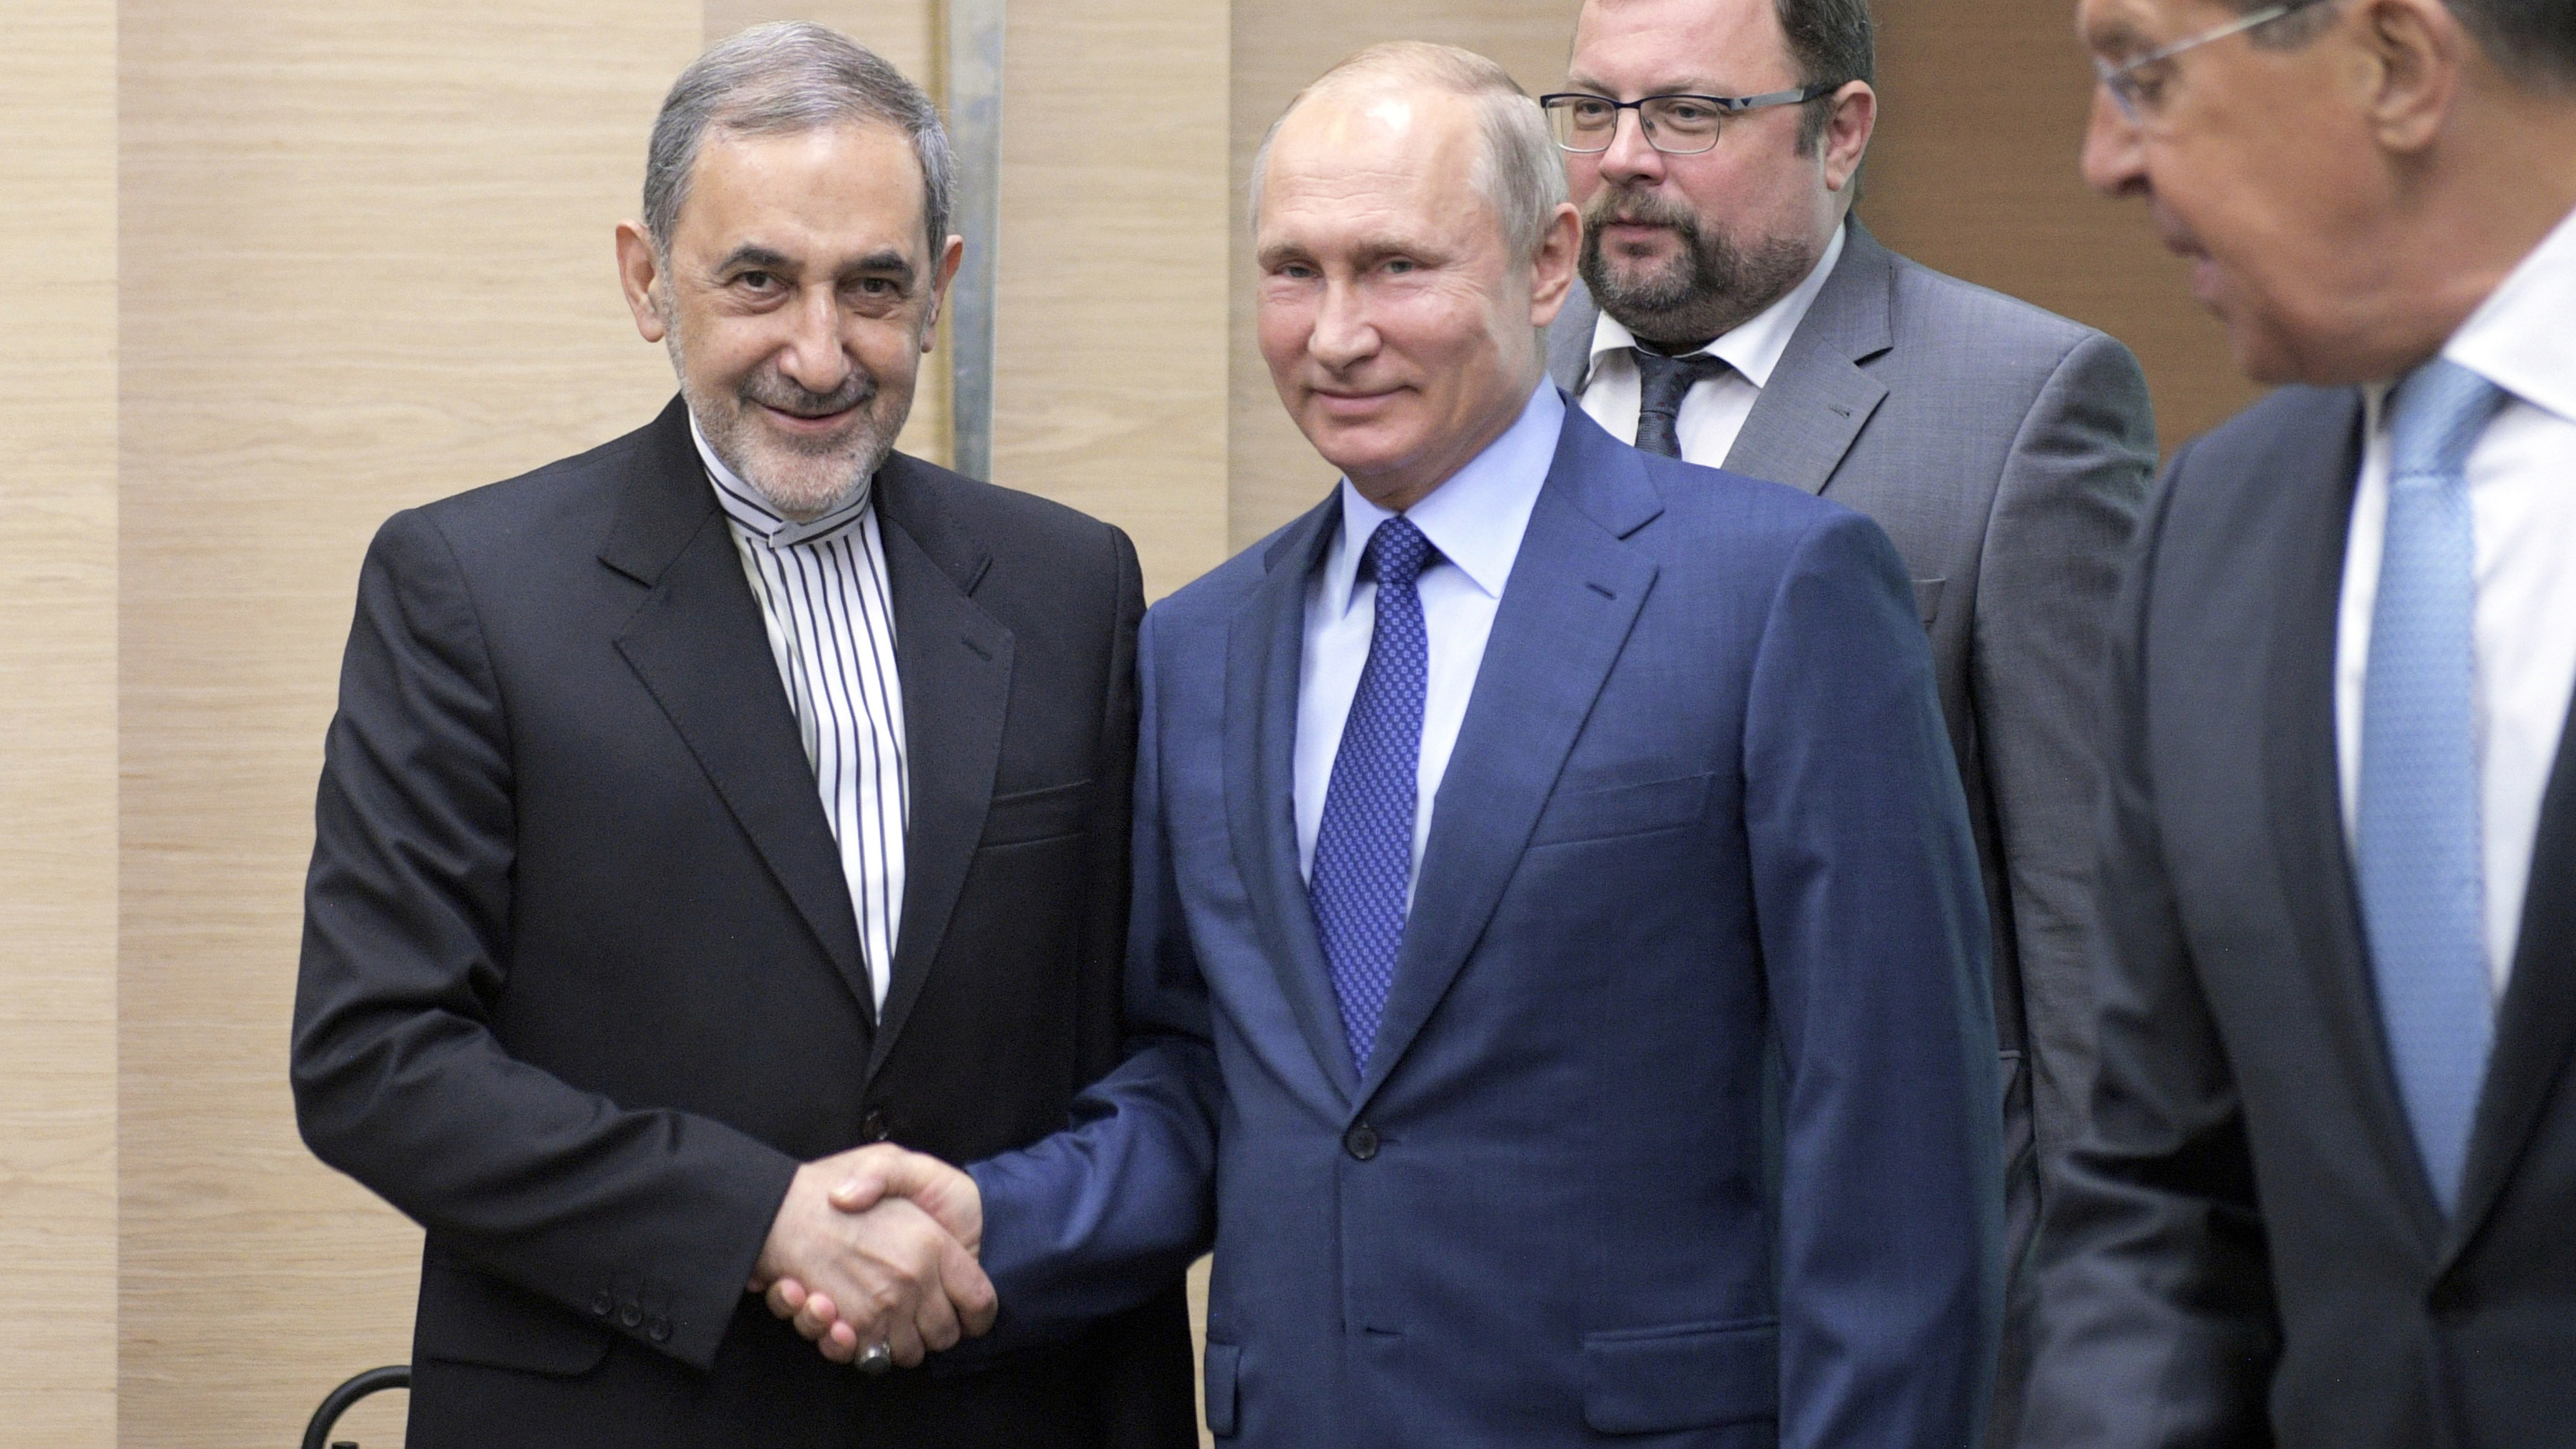 Russian President Vladimir Putin, center, shakes hands with Ali Akbar Velayati, a senior adviser to Iran's Supreme Leader Ayatollah Ali Khamenei, as Russian Foreign Minister Sergey Lavrov, stands at right, at Novo-Ograyovo outside in Moscow, Russia, Thursday, July 12, 2018. Putin has received the Iranian leader's top adviser hours after conferring with the Israeli prime minister about Iran's presence in Syria. (Alexei Druzhinin, Sputnik, Kremlin Pool Photo via AP)